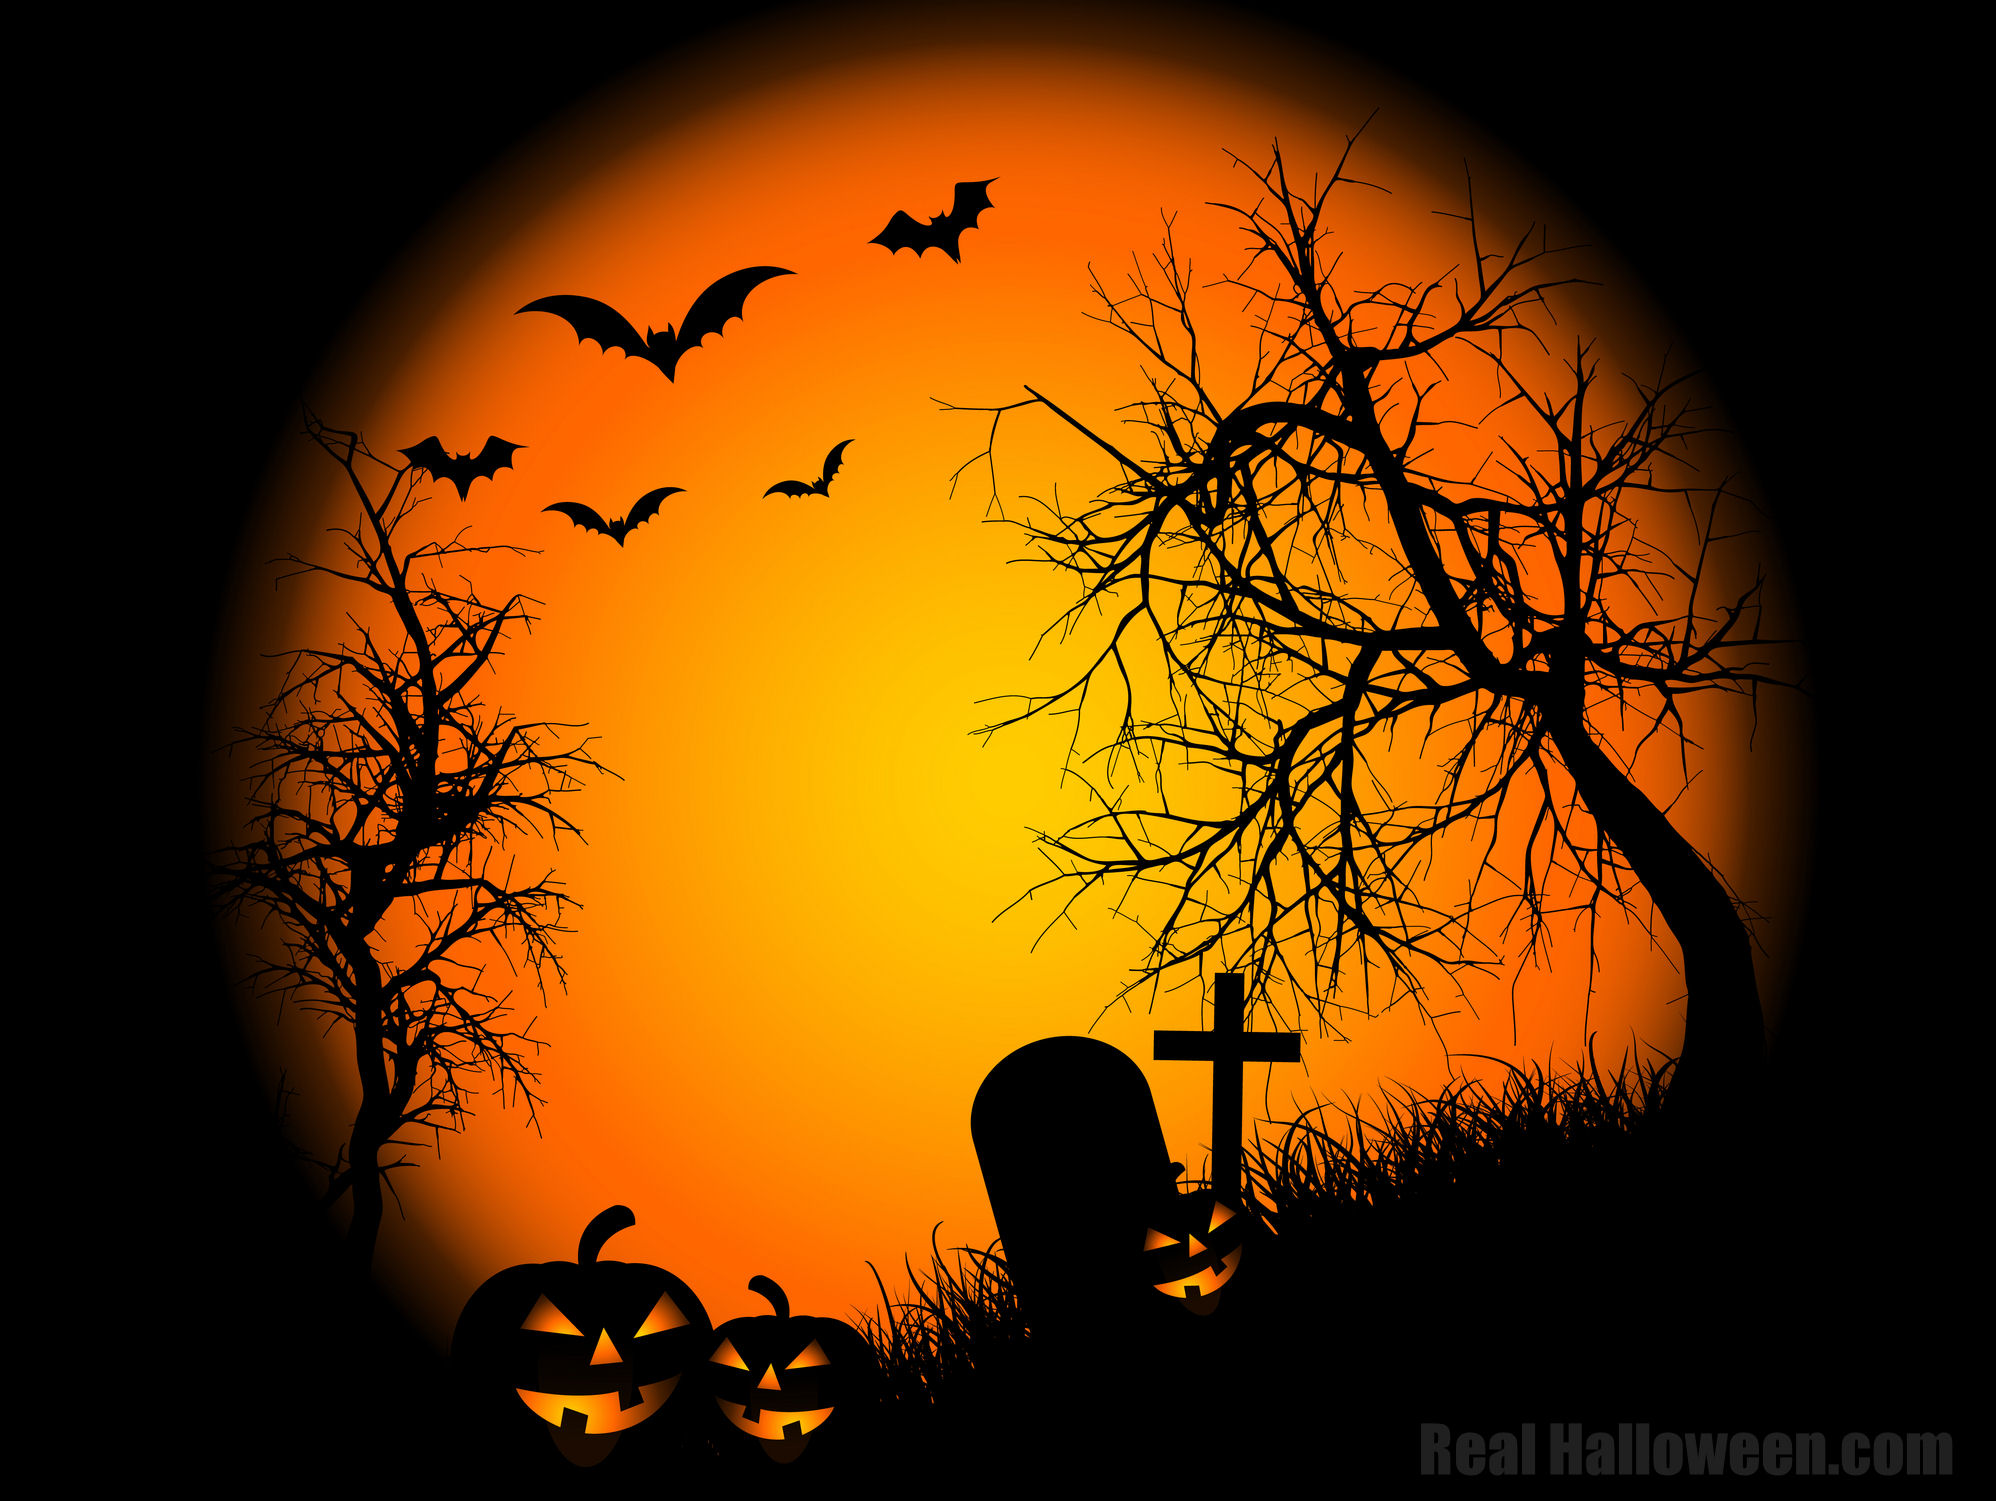 halloween desktop backgrounds Flash and Video 1996x1501